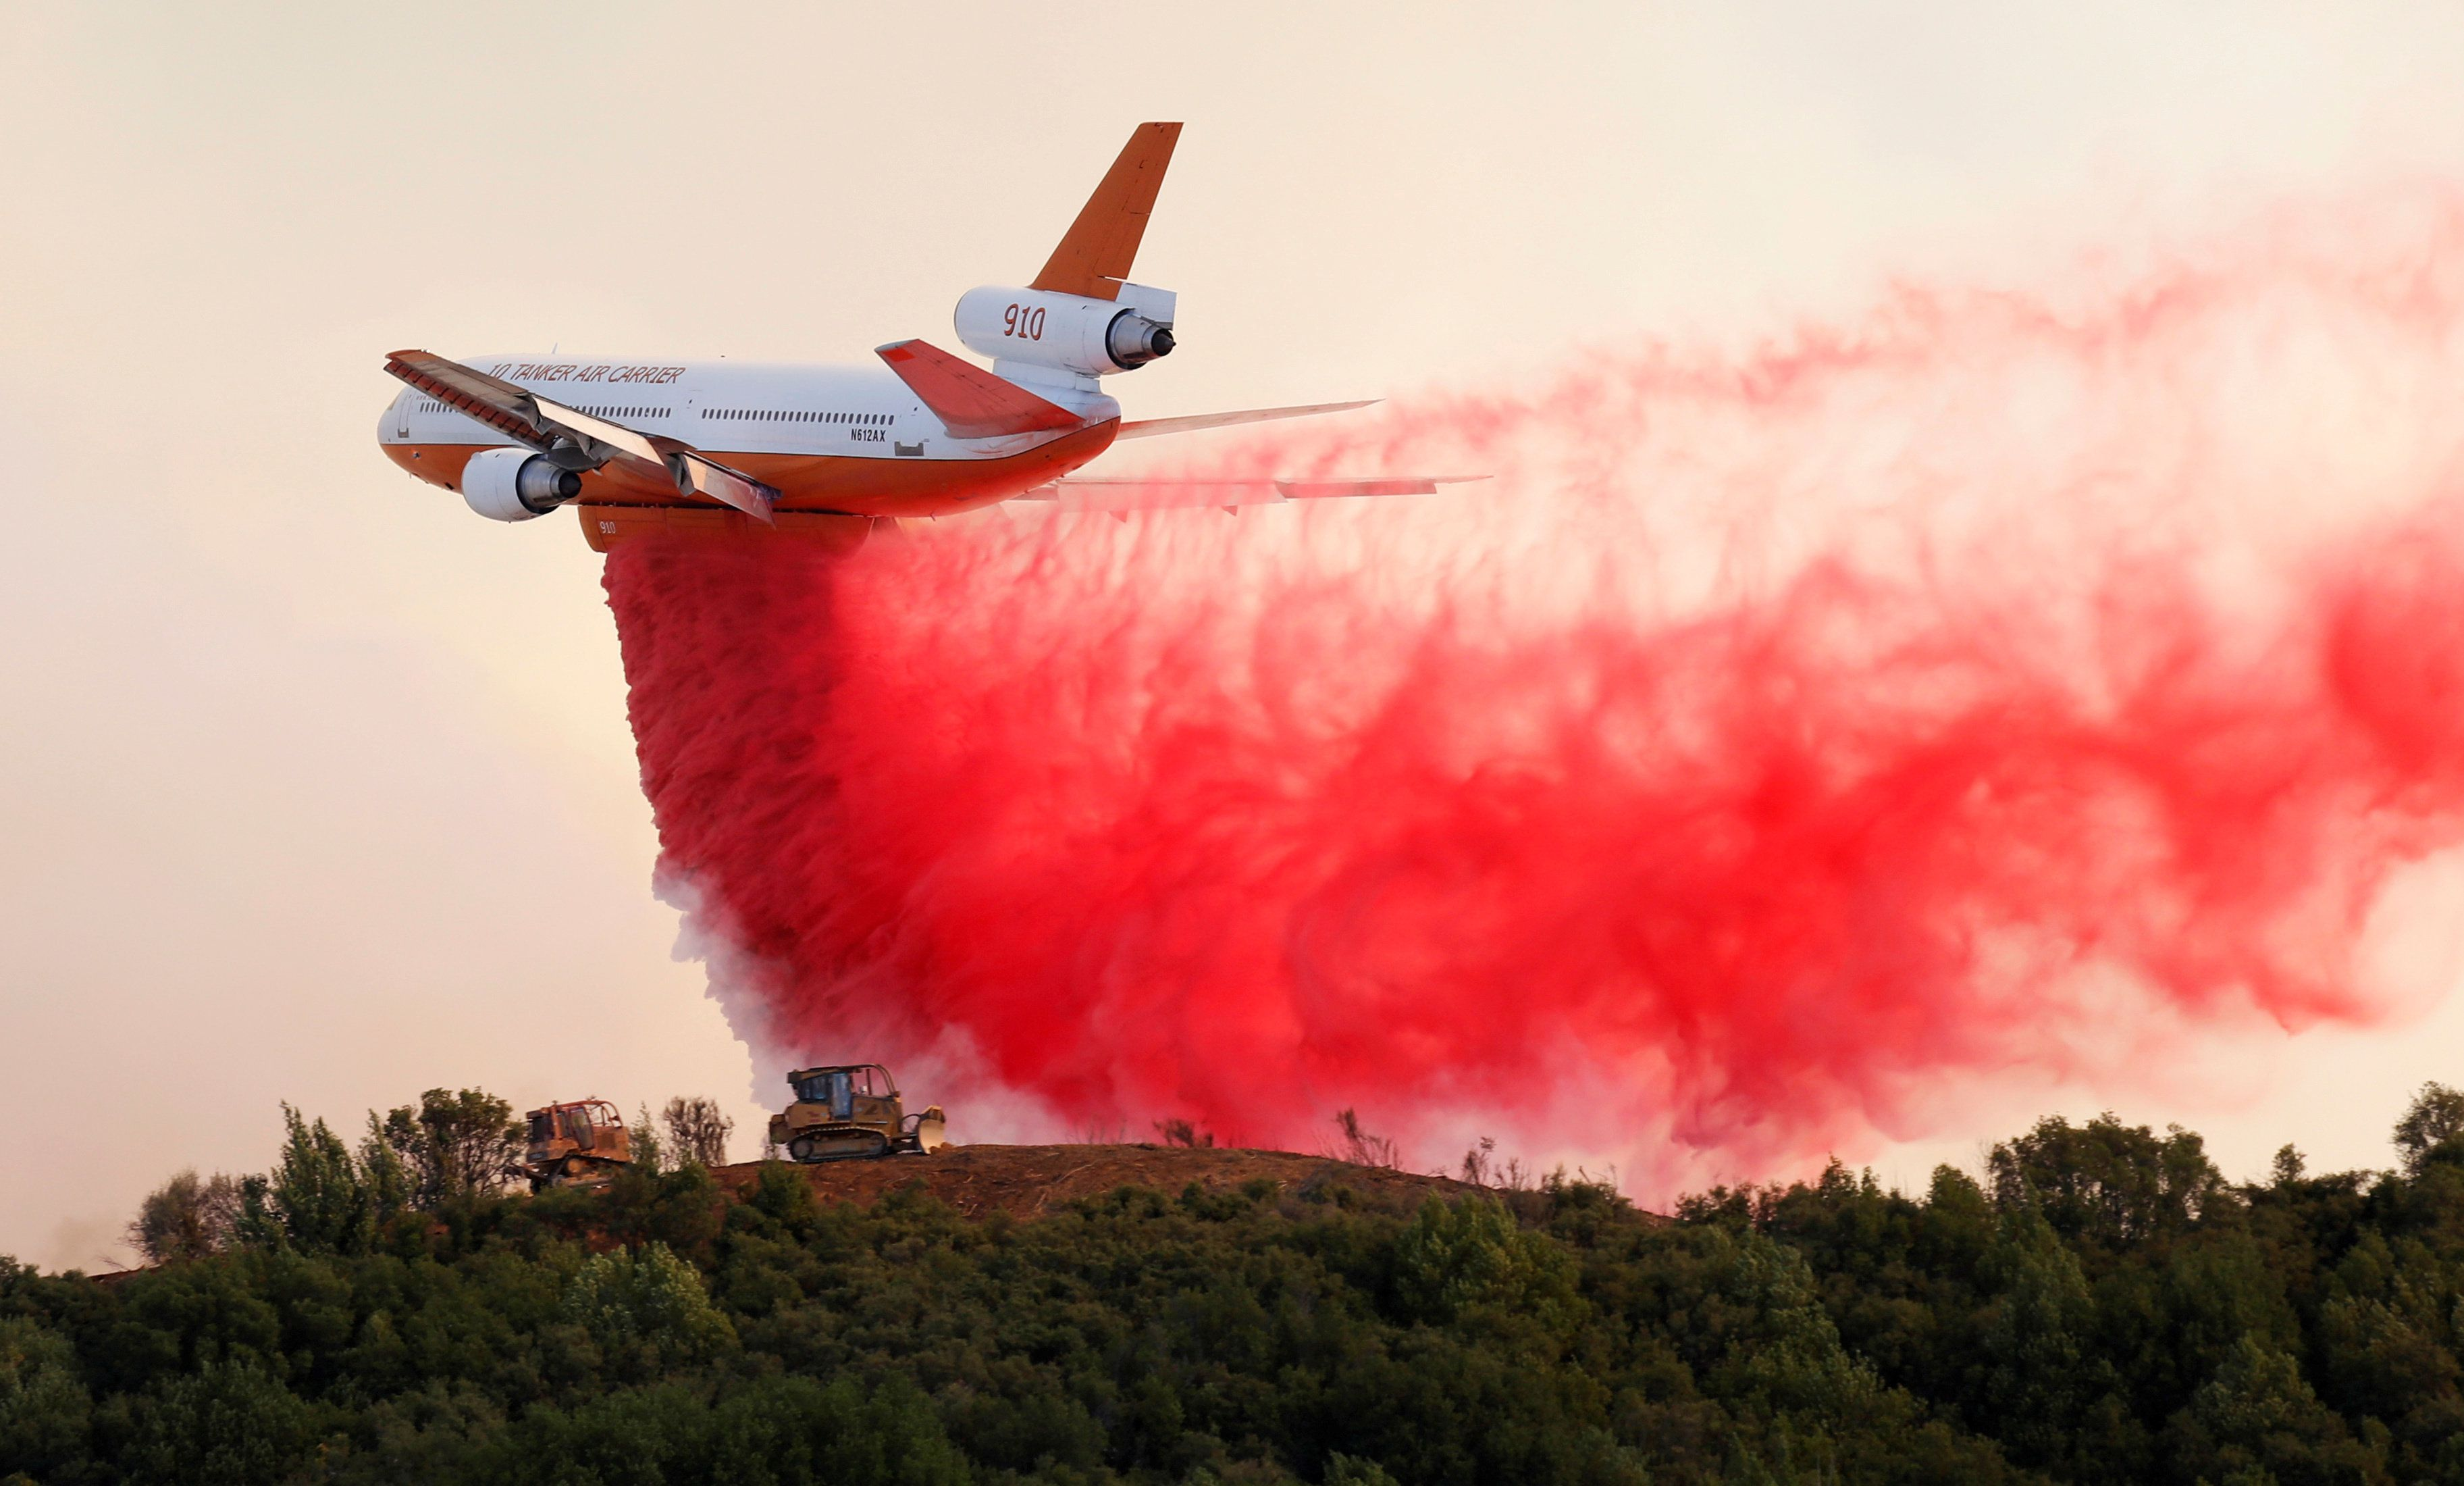 A DC-10 air tanker drops fire retardant along the crest of a hill to protect the two bulldozers below that were cutting fire lines at the River Fire (Mendocino Complex) near Lakeport, California, U.S. August 2, 2018.  REUTERS/Fred Greaves      TPX IMAGES OF THE DAY